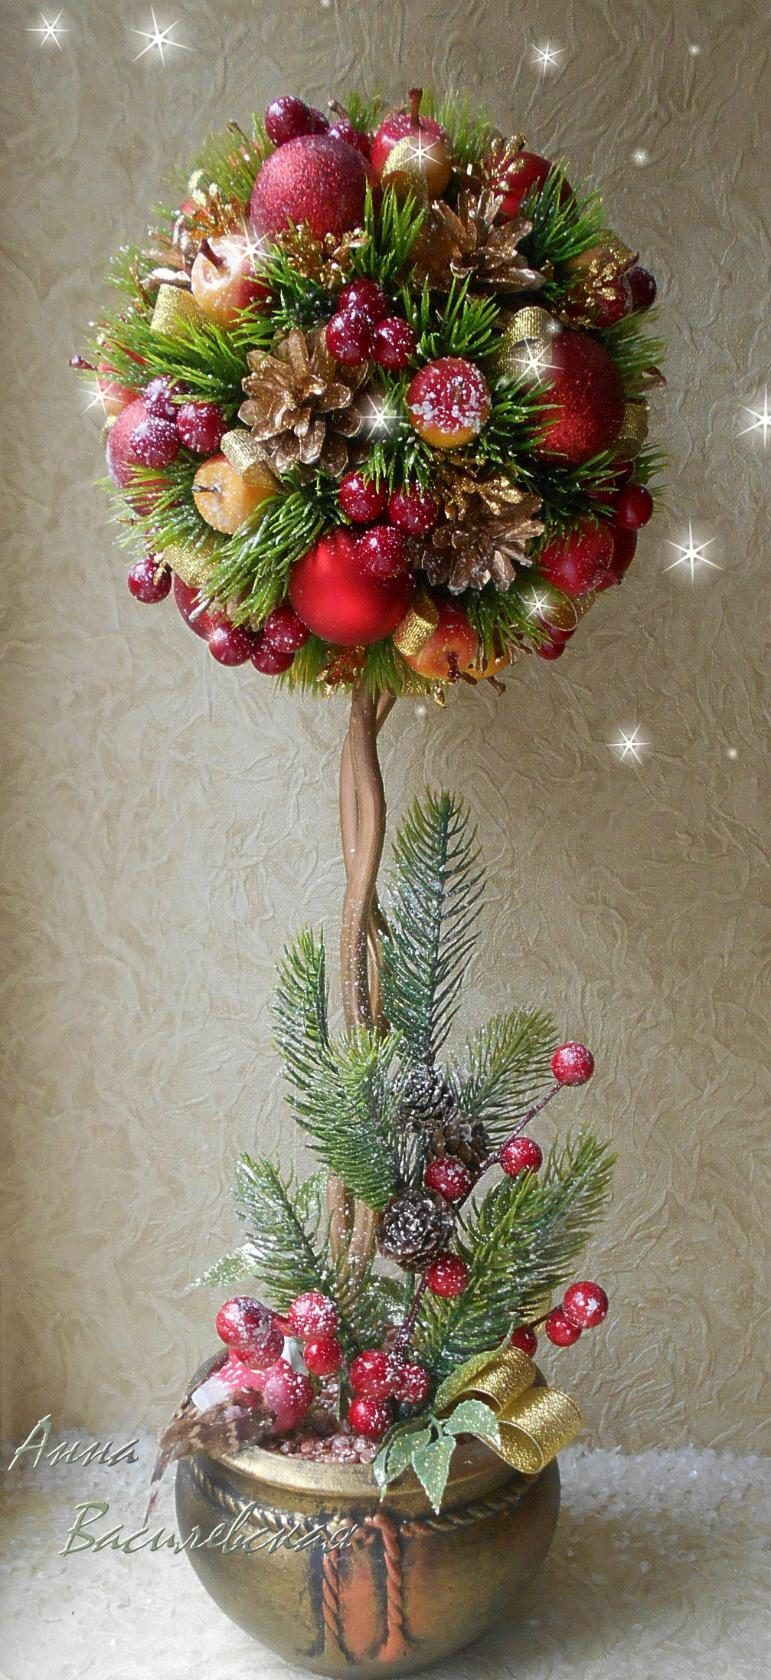 more christmas topiary christmas flower decorations - Topiary Christmas Decorations